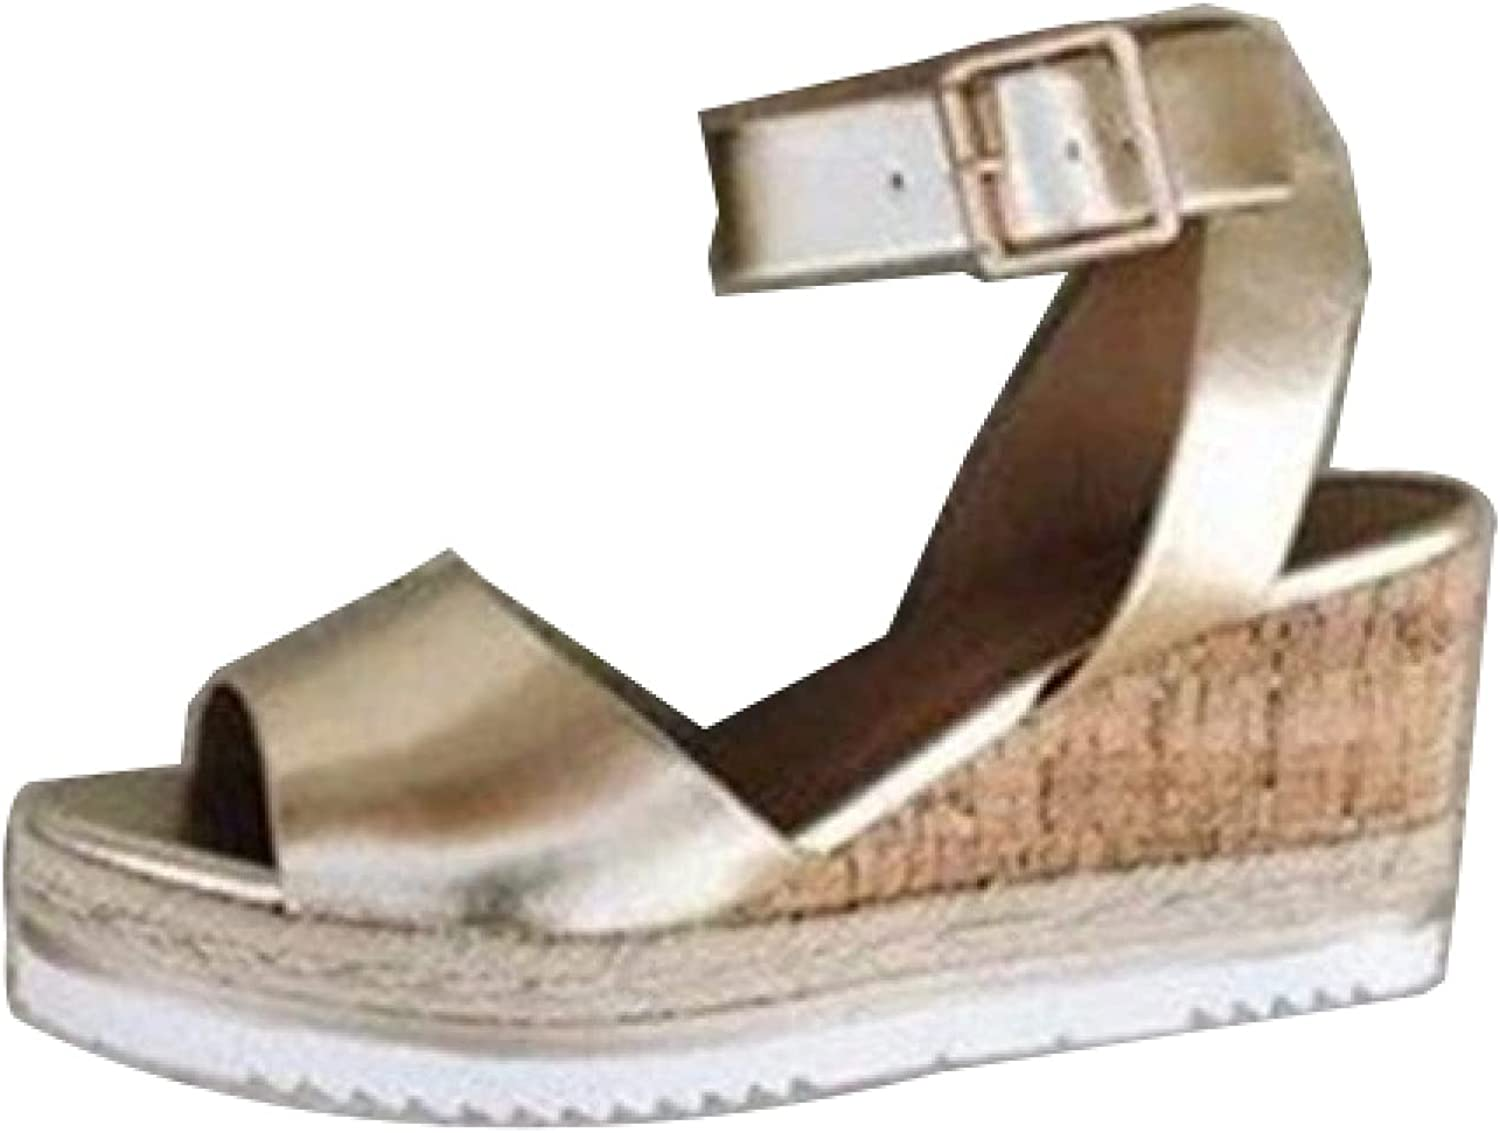 Wedges Large discharge sale Sandal for Womens Beach Retro Open Toe Ankle Adjus Buckle Store